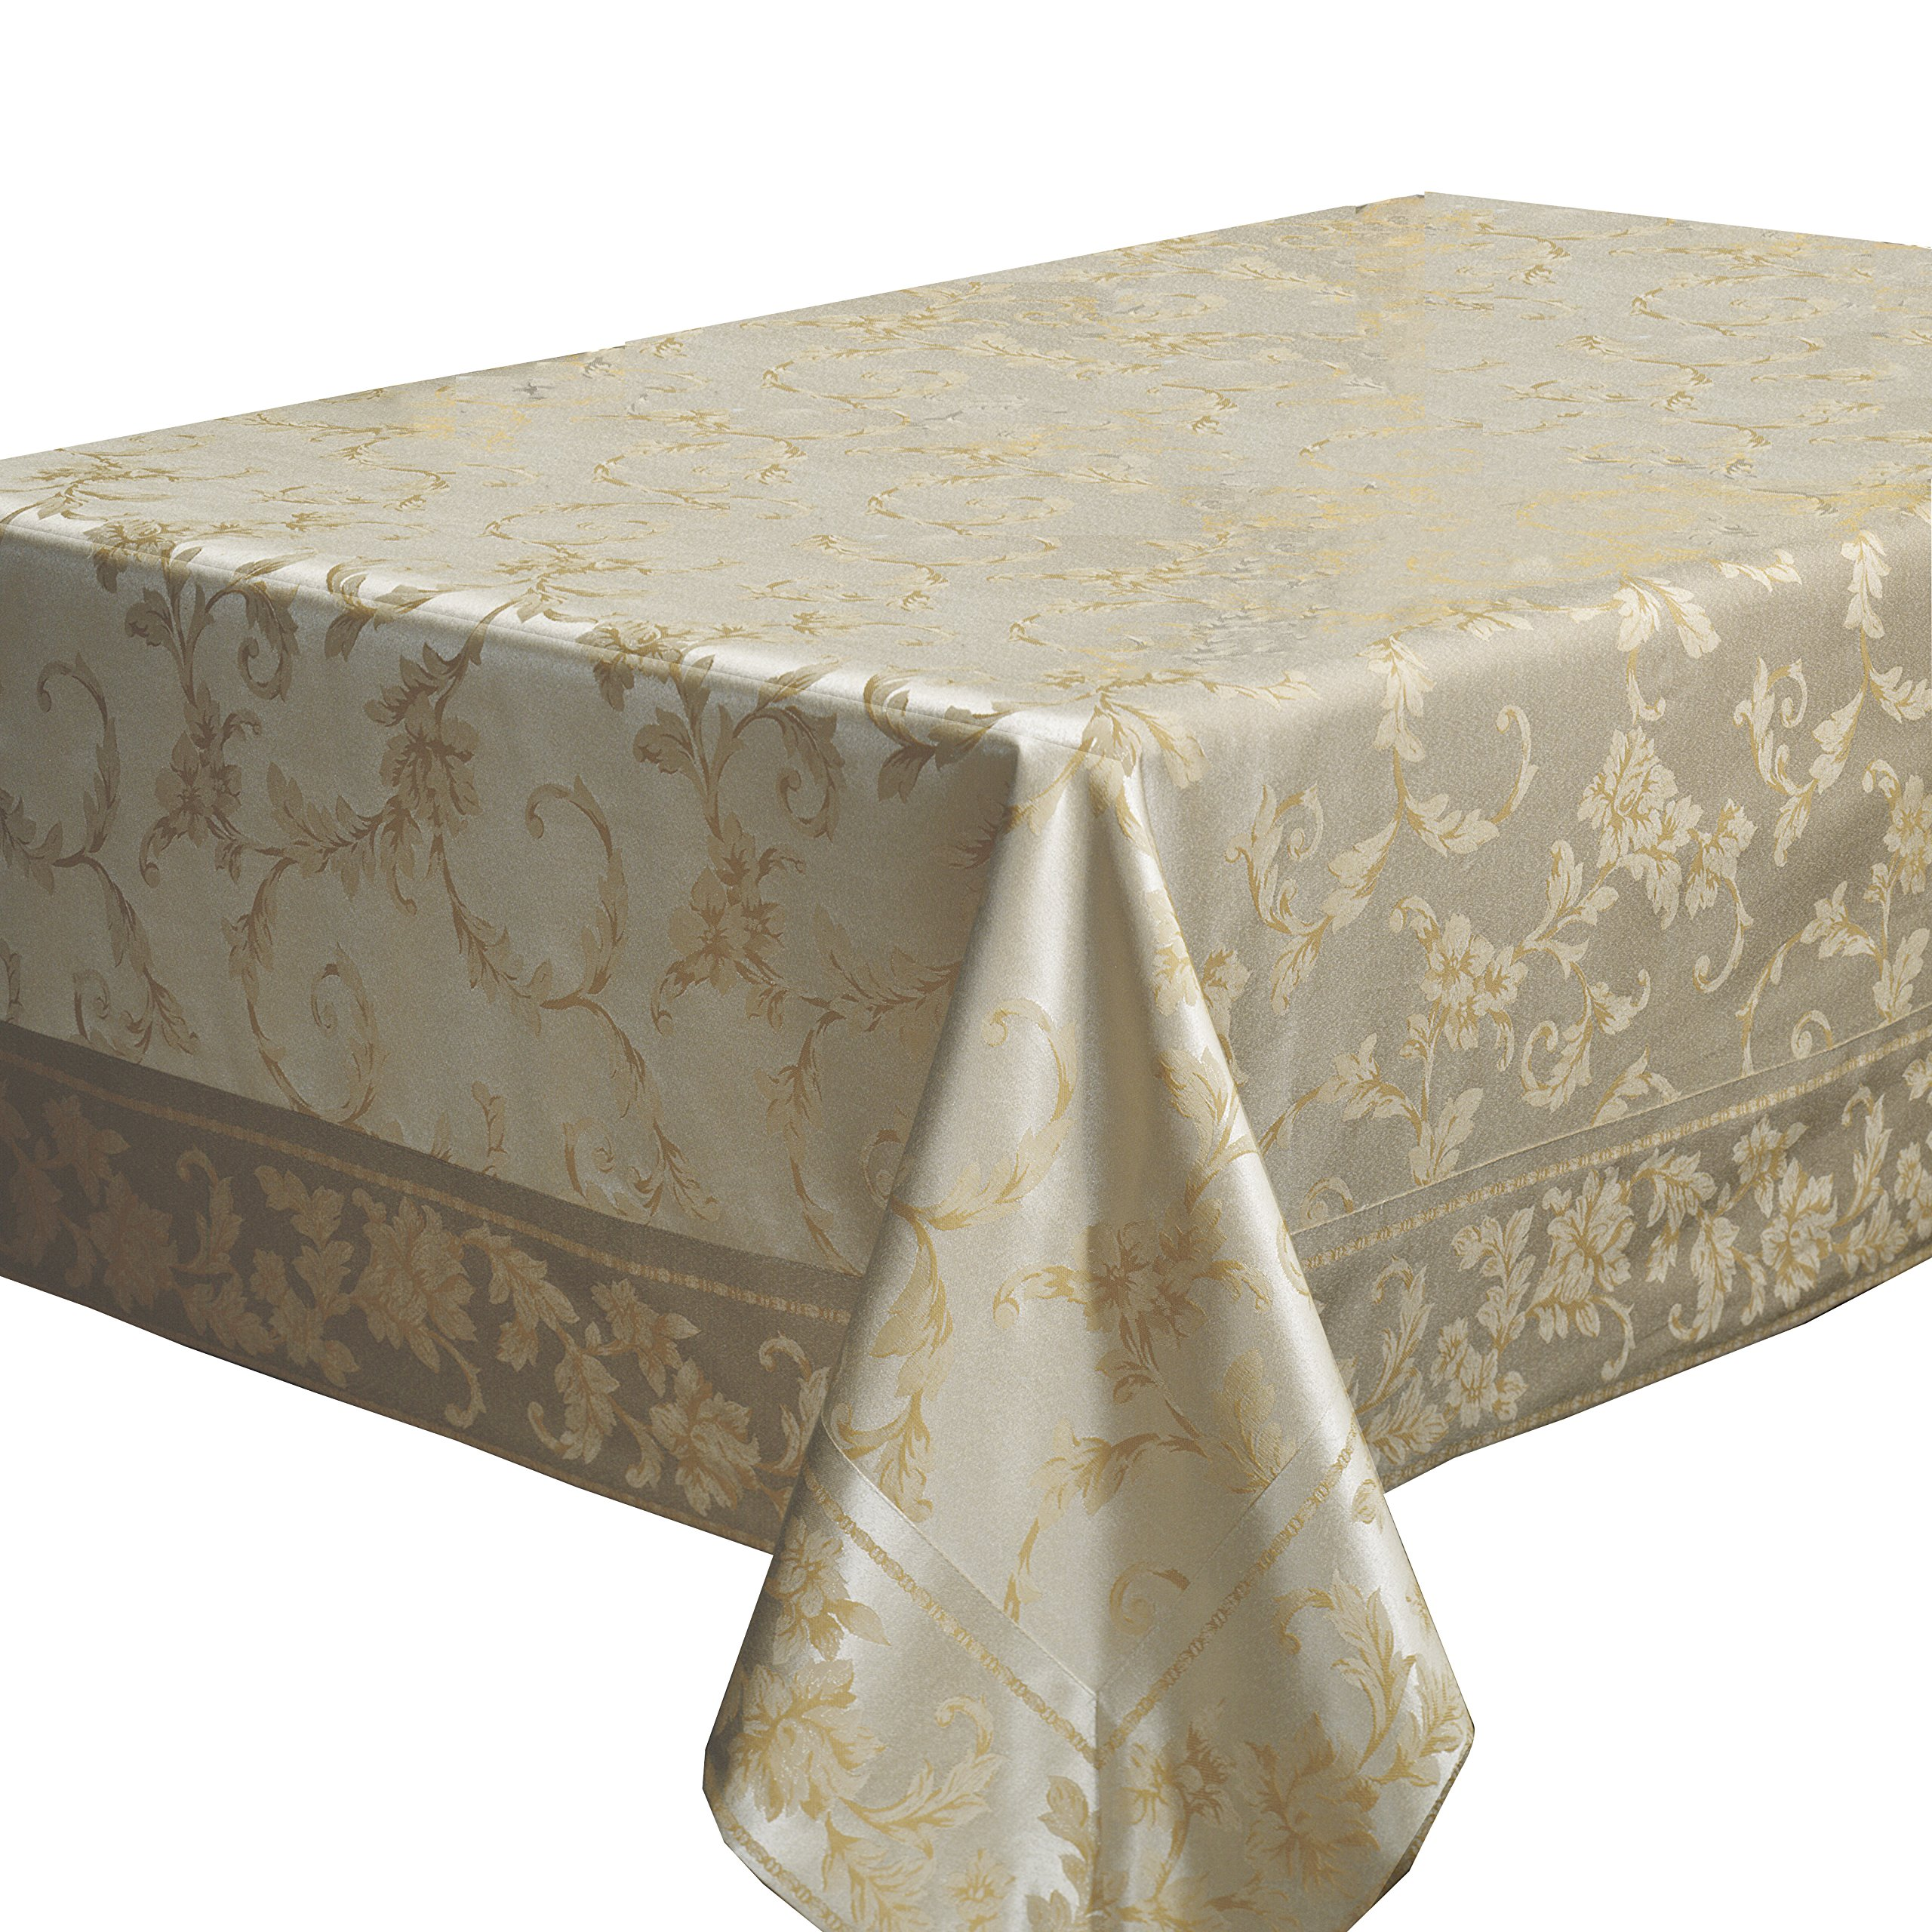 Attractive Thanksgiving Tablecloth Elegant Italian Style Harmony Scroll In Gold 60 X  120 In